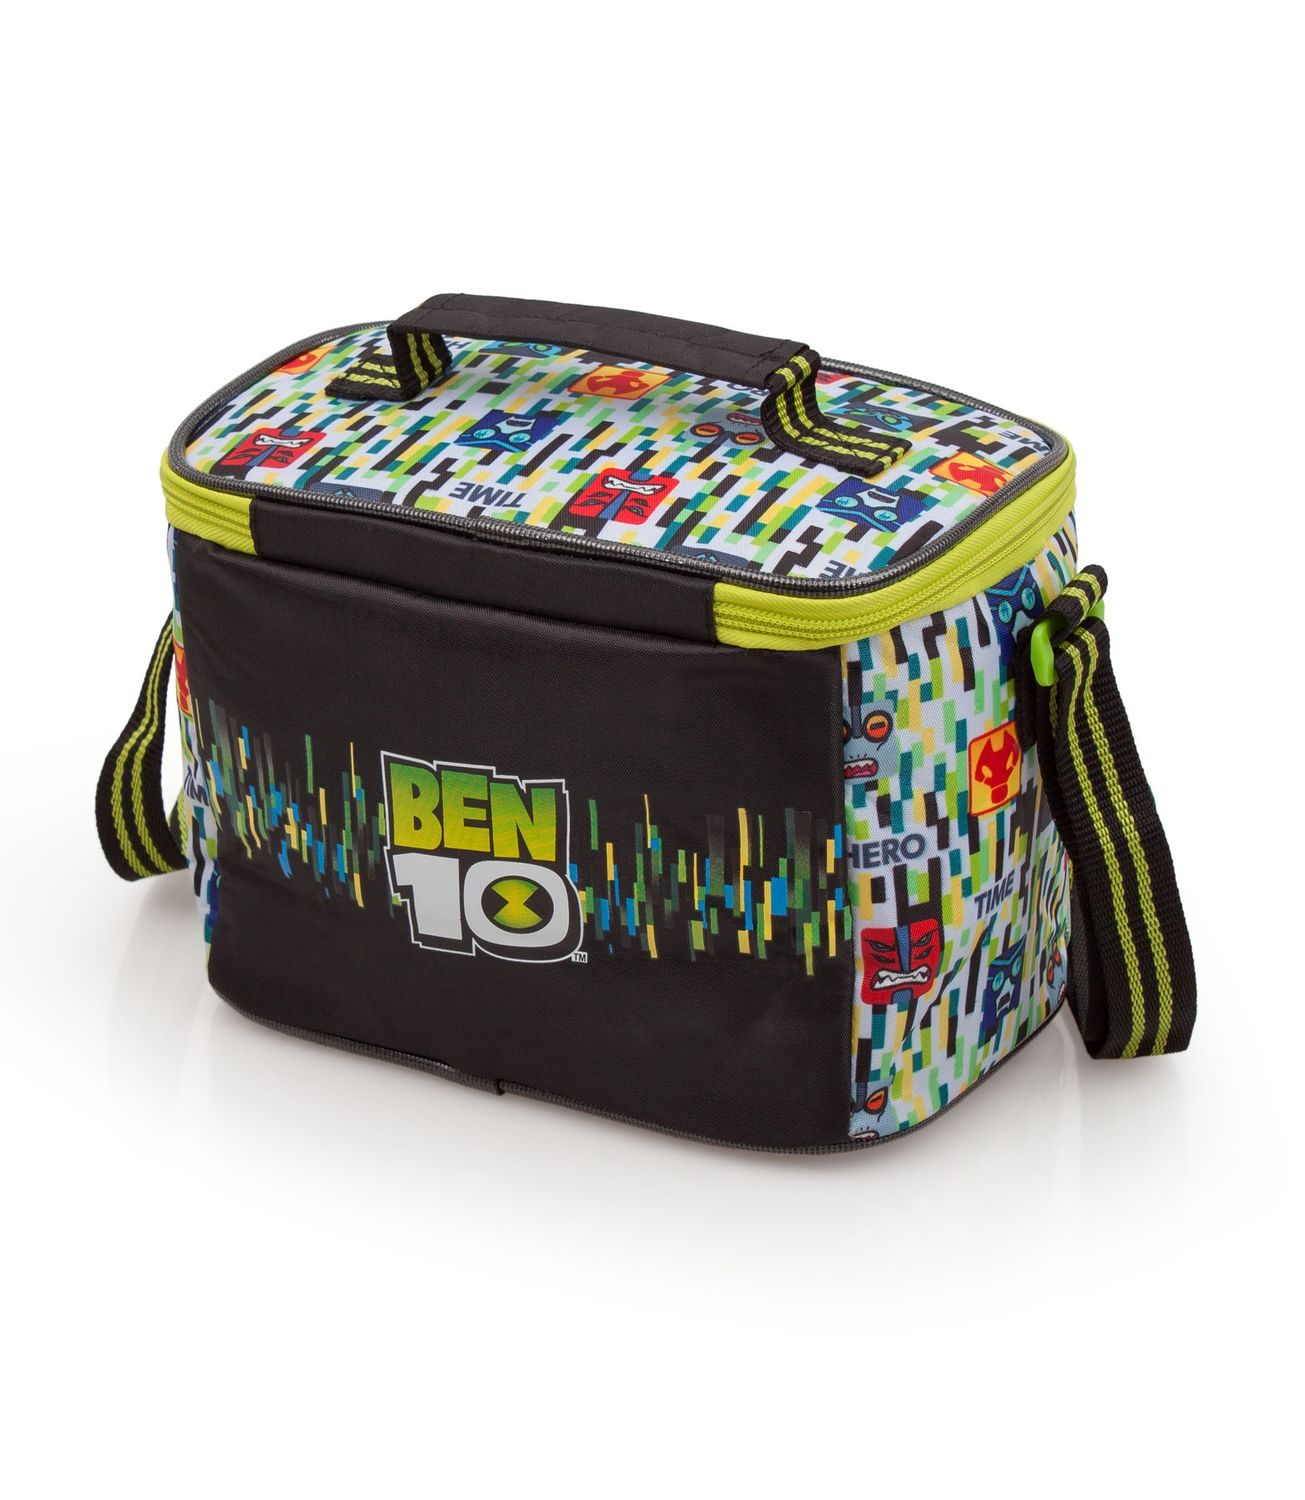 BEN10 Premium Cooler Lunch Bag – image 2